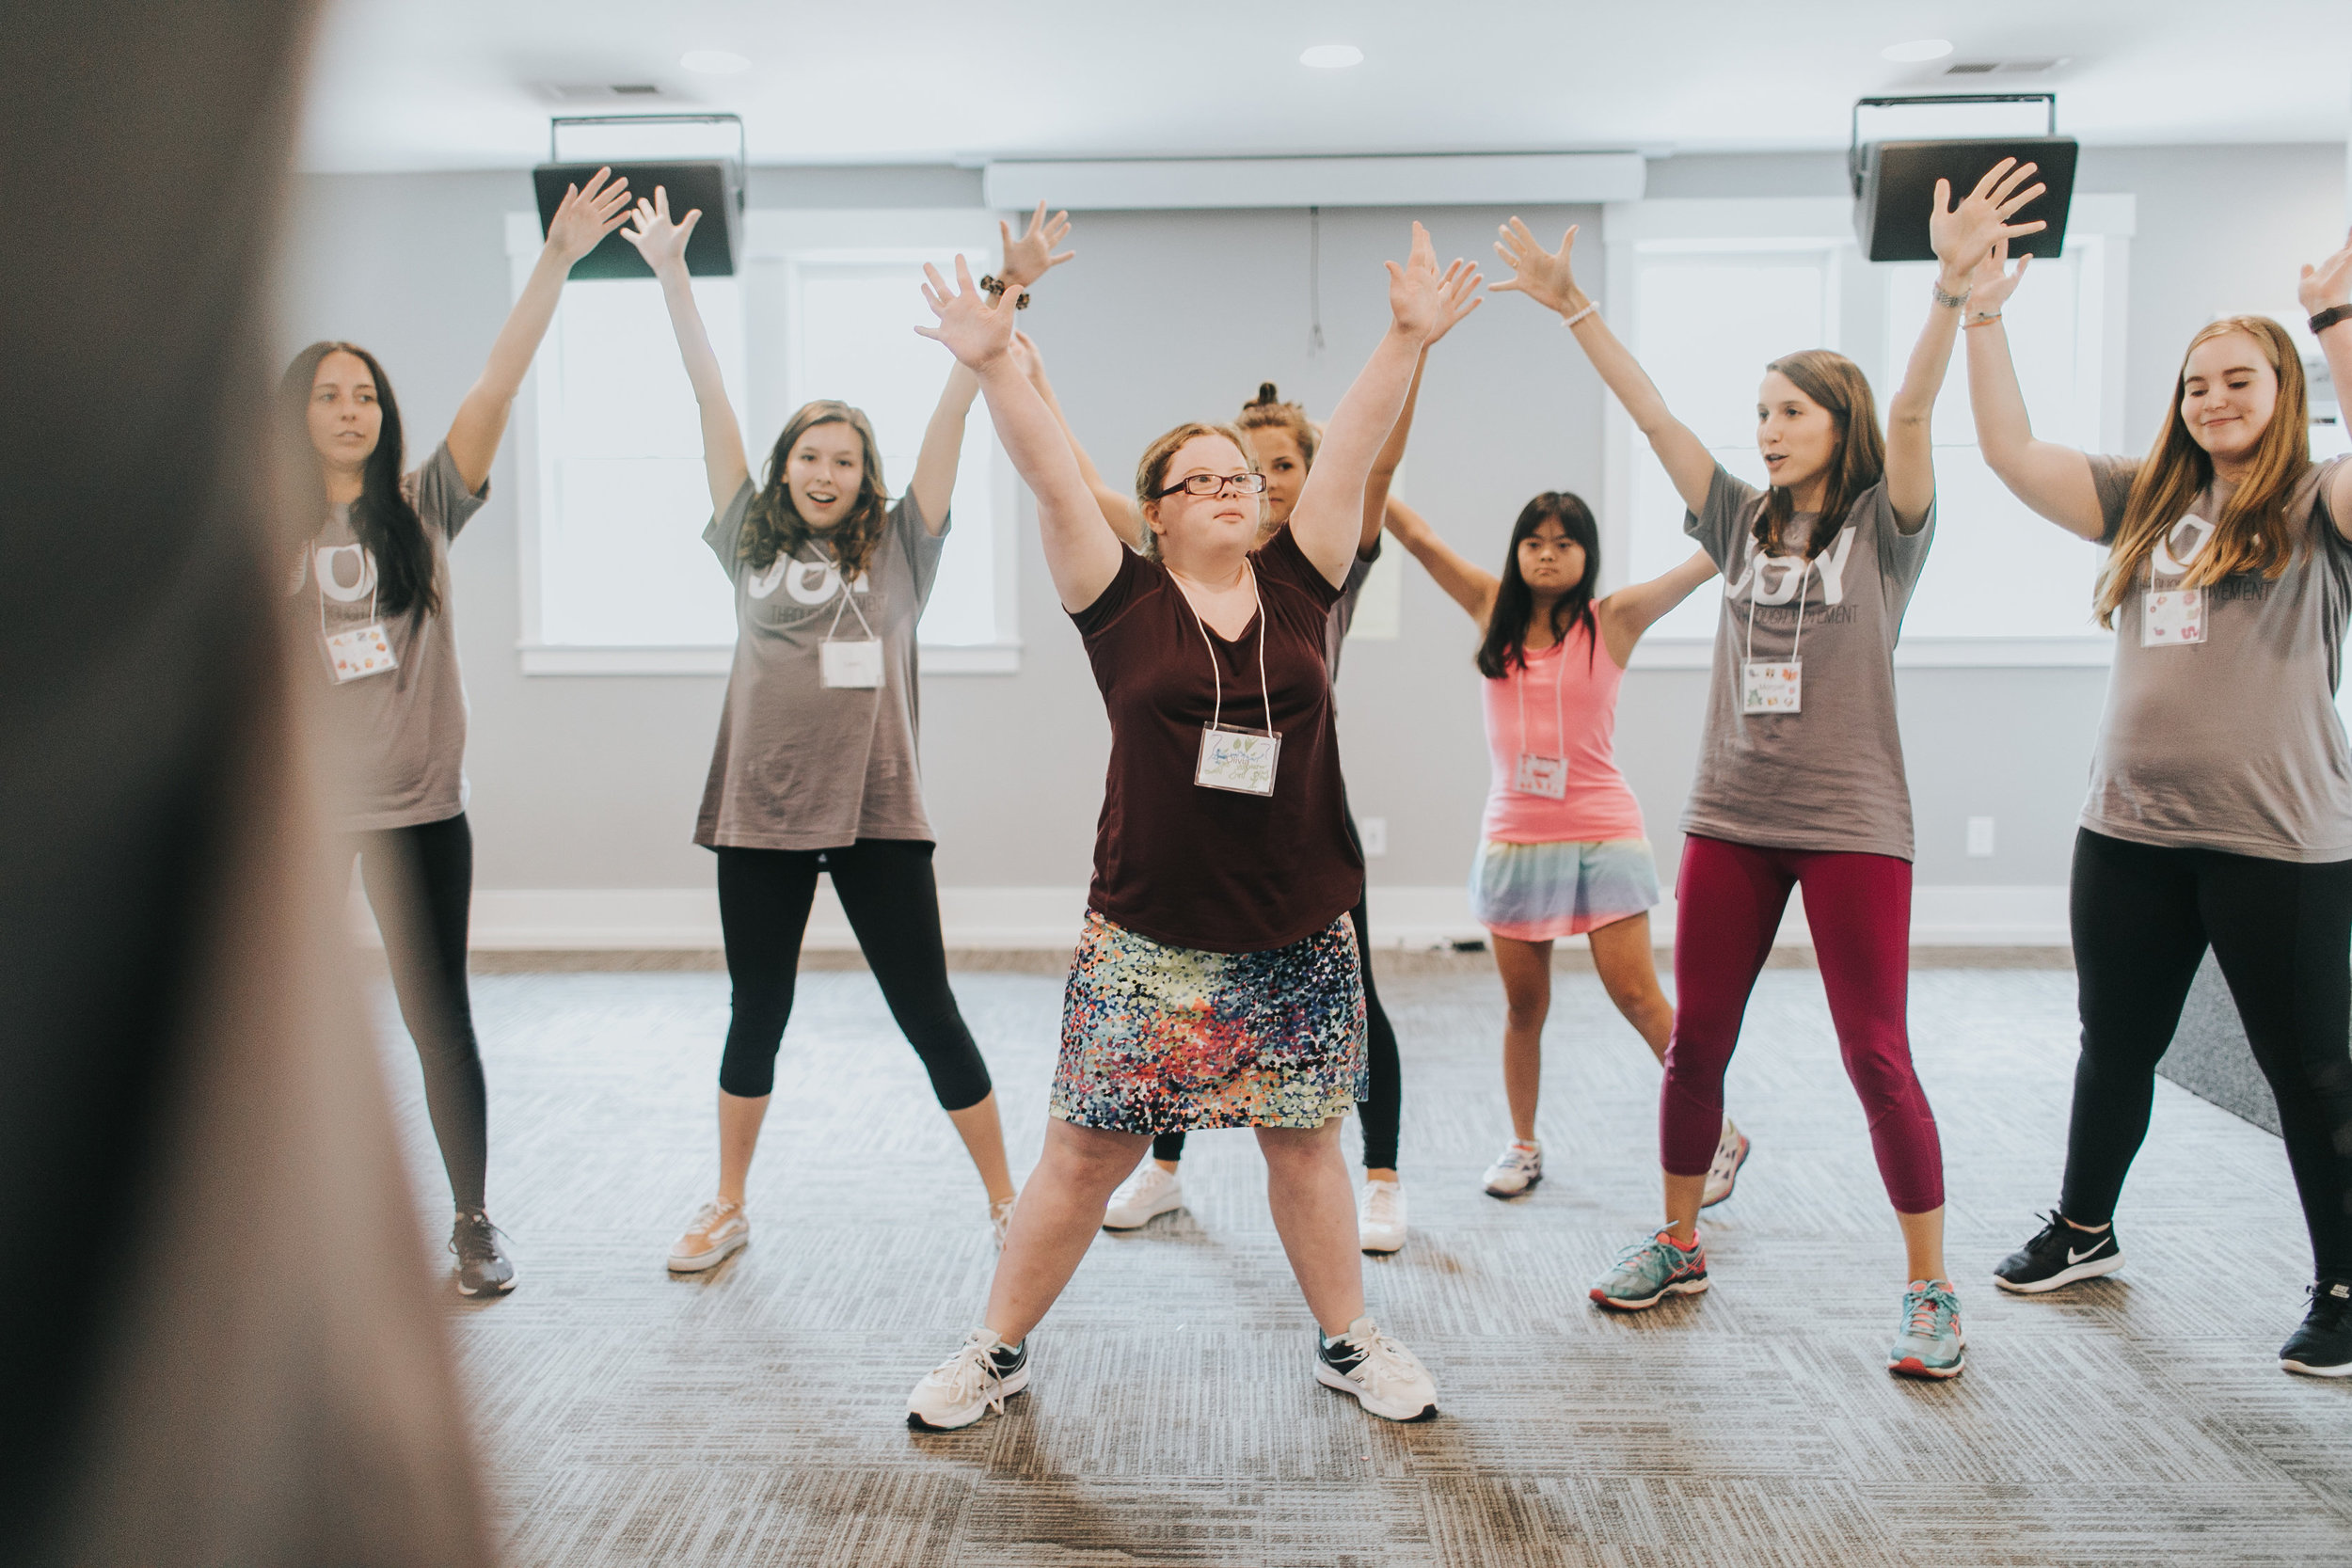 """Dance transformed my life for the better and I wanted to share that same experience with a group of people who may not otherwise have the opportunity."" - -Lauren Beasley, Founder, MOVE Inclusive Dance"